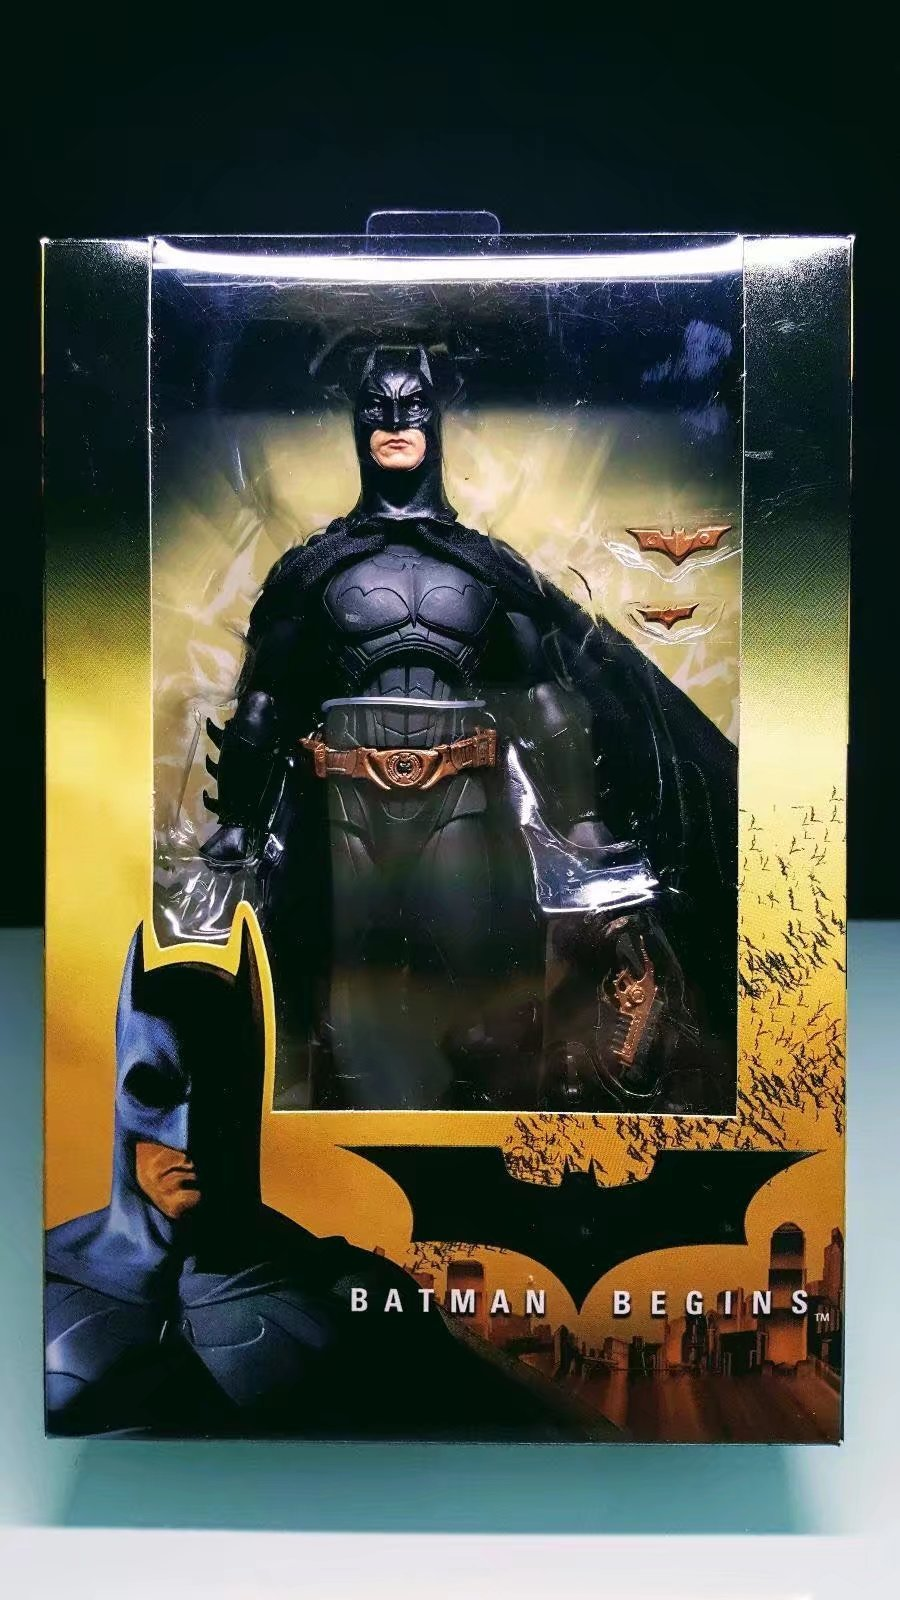 NECA Batman Begins Bruce Wayne PVC Action Figure Collectible Model Toy 7inch 18cm neca heroes of the storm dominion ghost nova pvc action figure collectible model toy 15cm